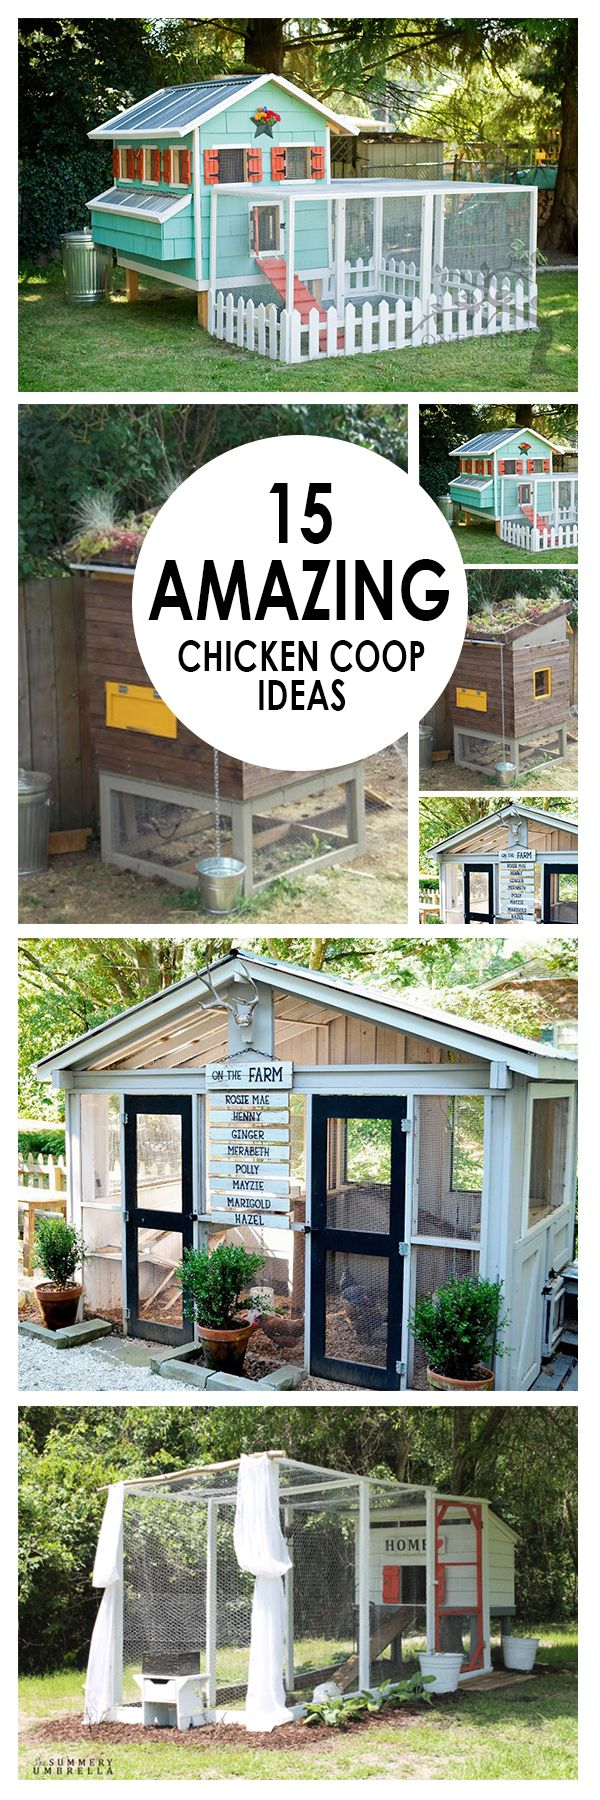 15 Amazing Chicken Coop Ideas - Bees and Roses